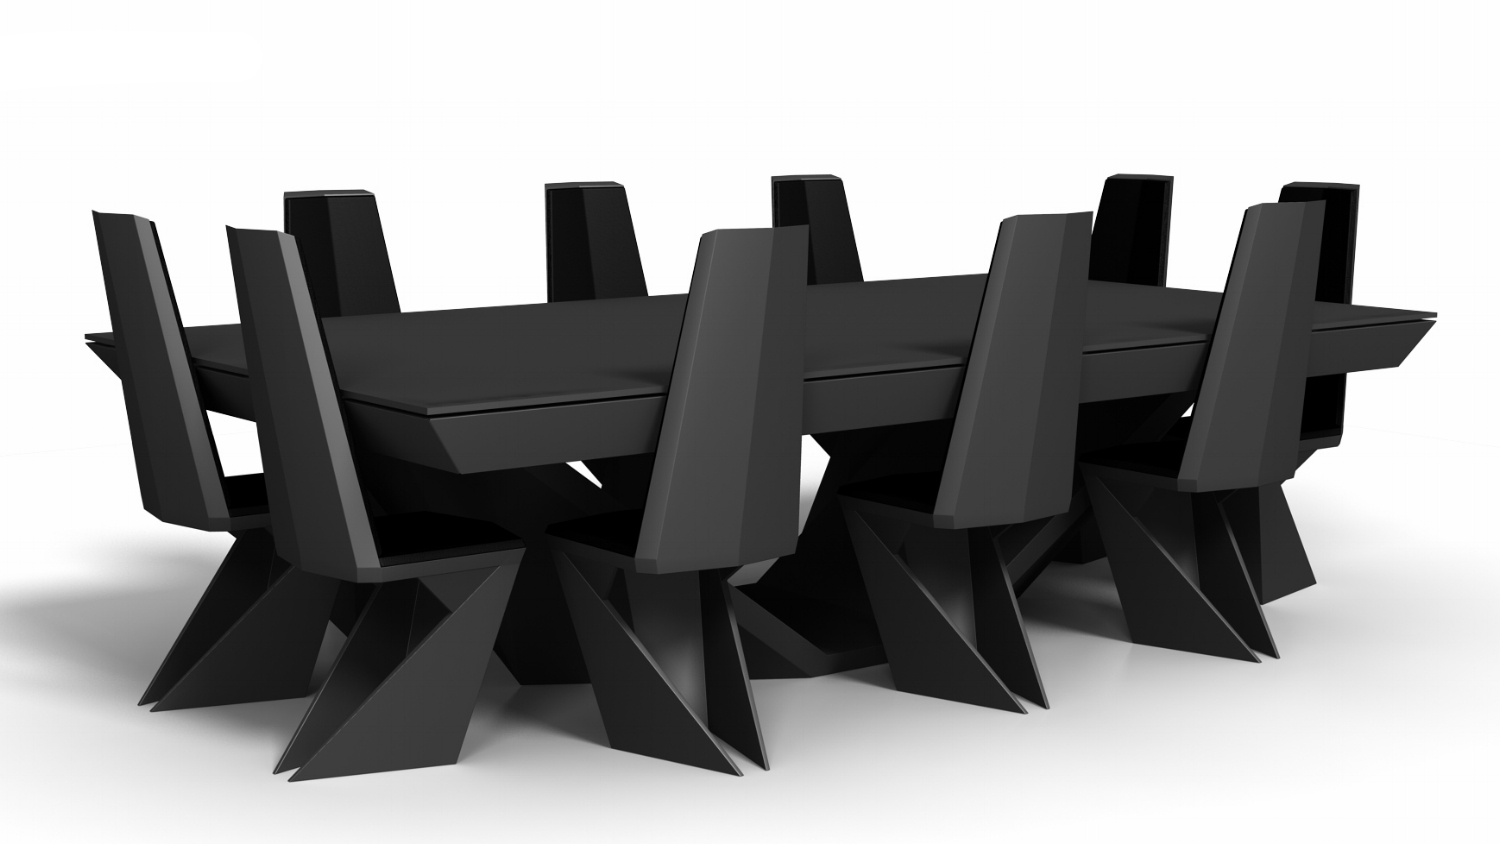 Stealth Billiards Table with Chairs